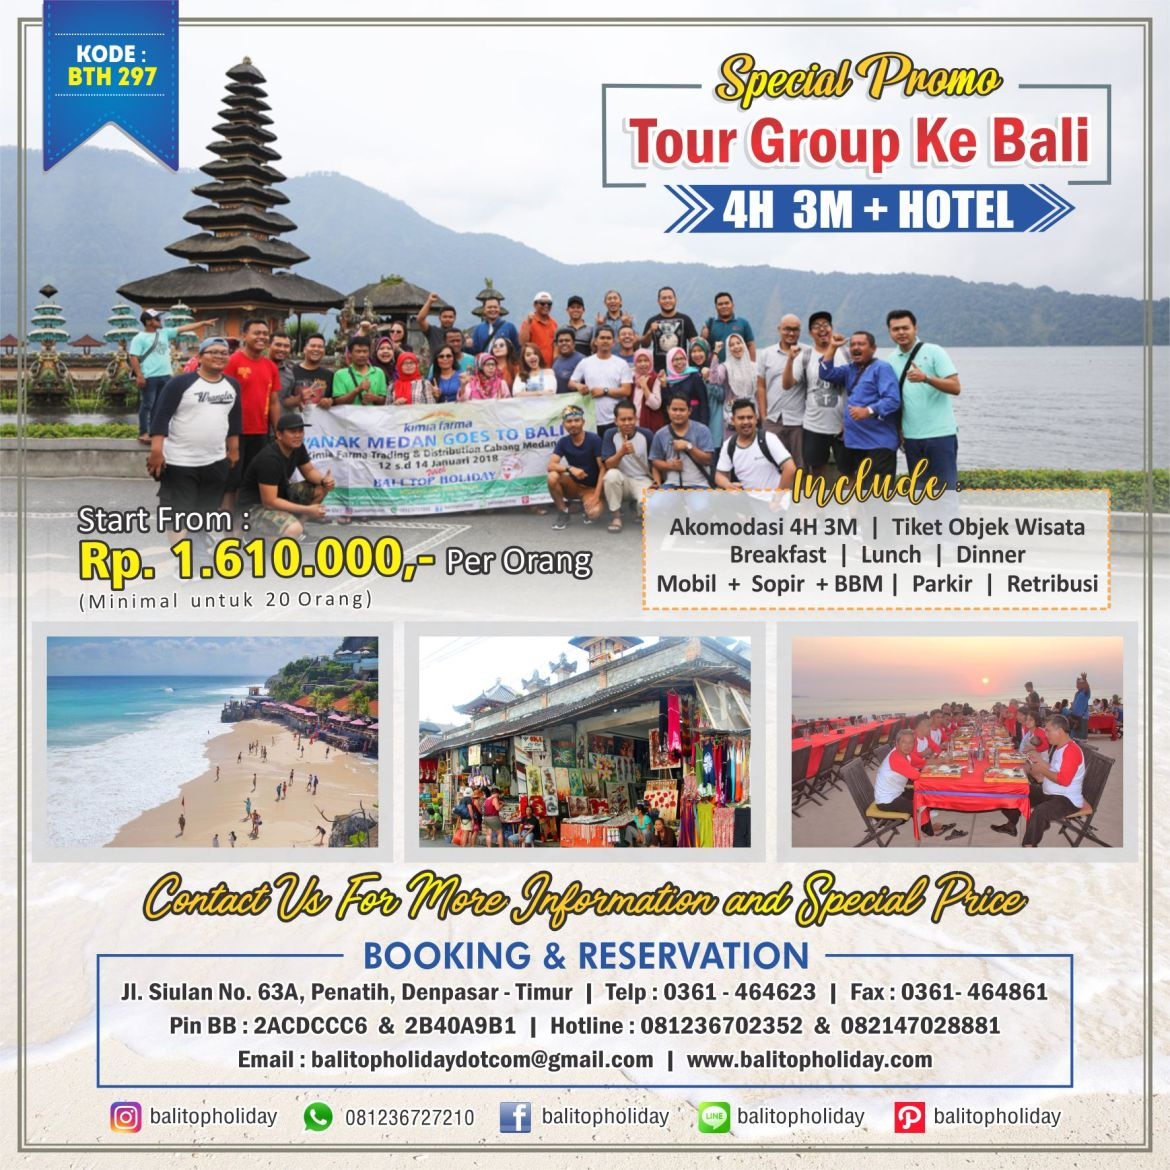 Paket tour group murah BTH 297